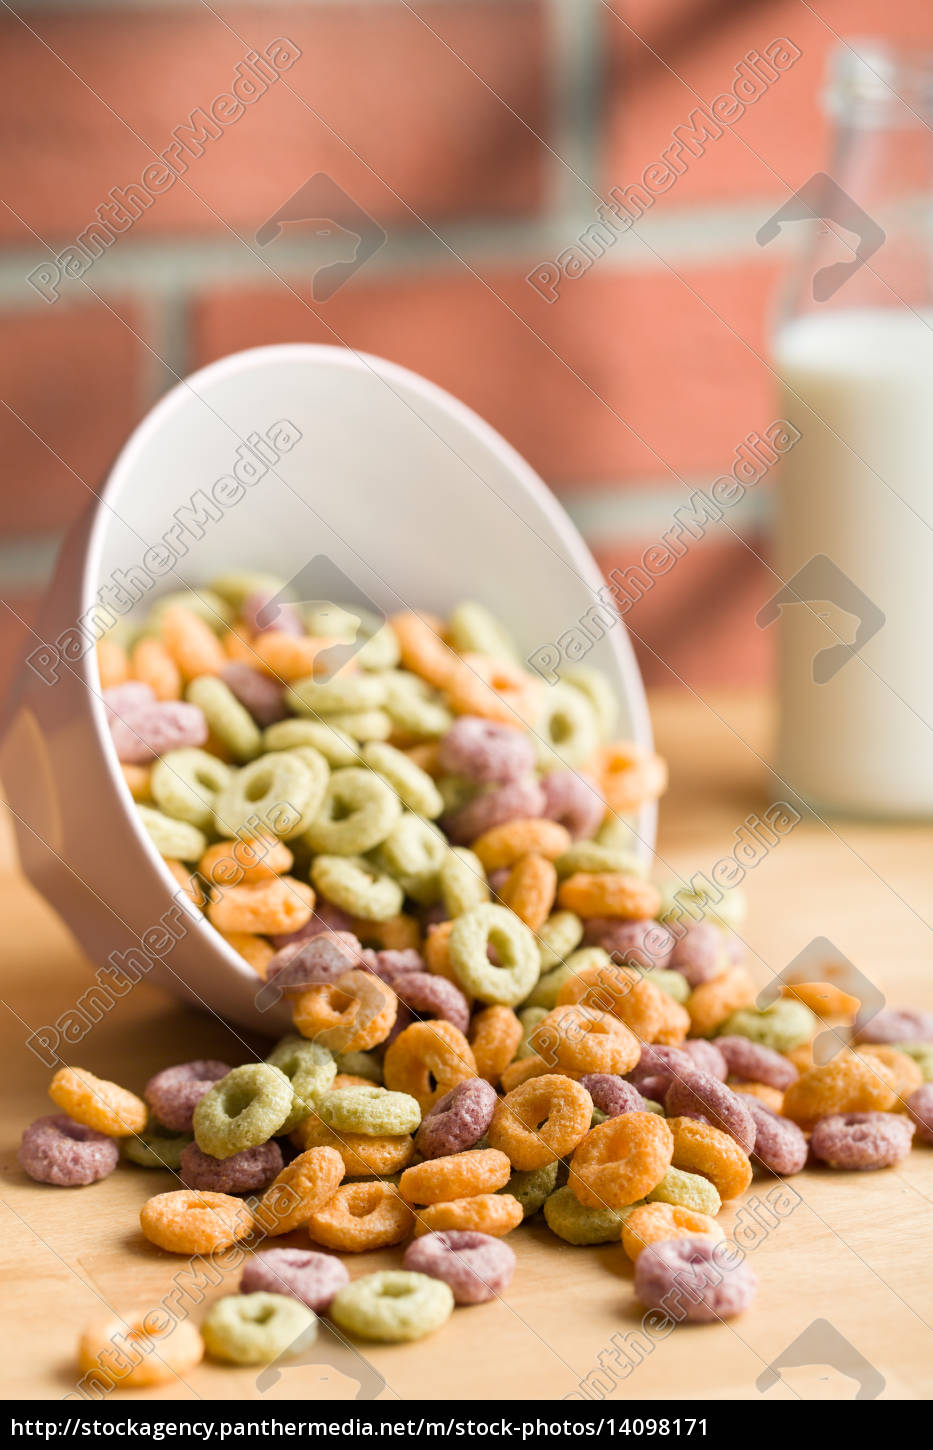 colorful, cereal, rings, on, kitchen, table - 14098171